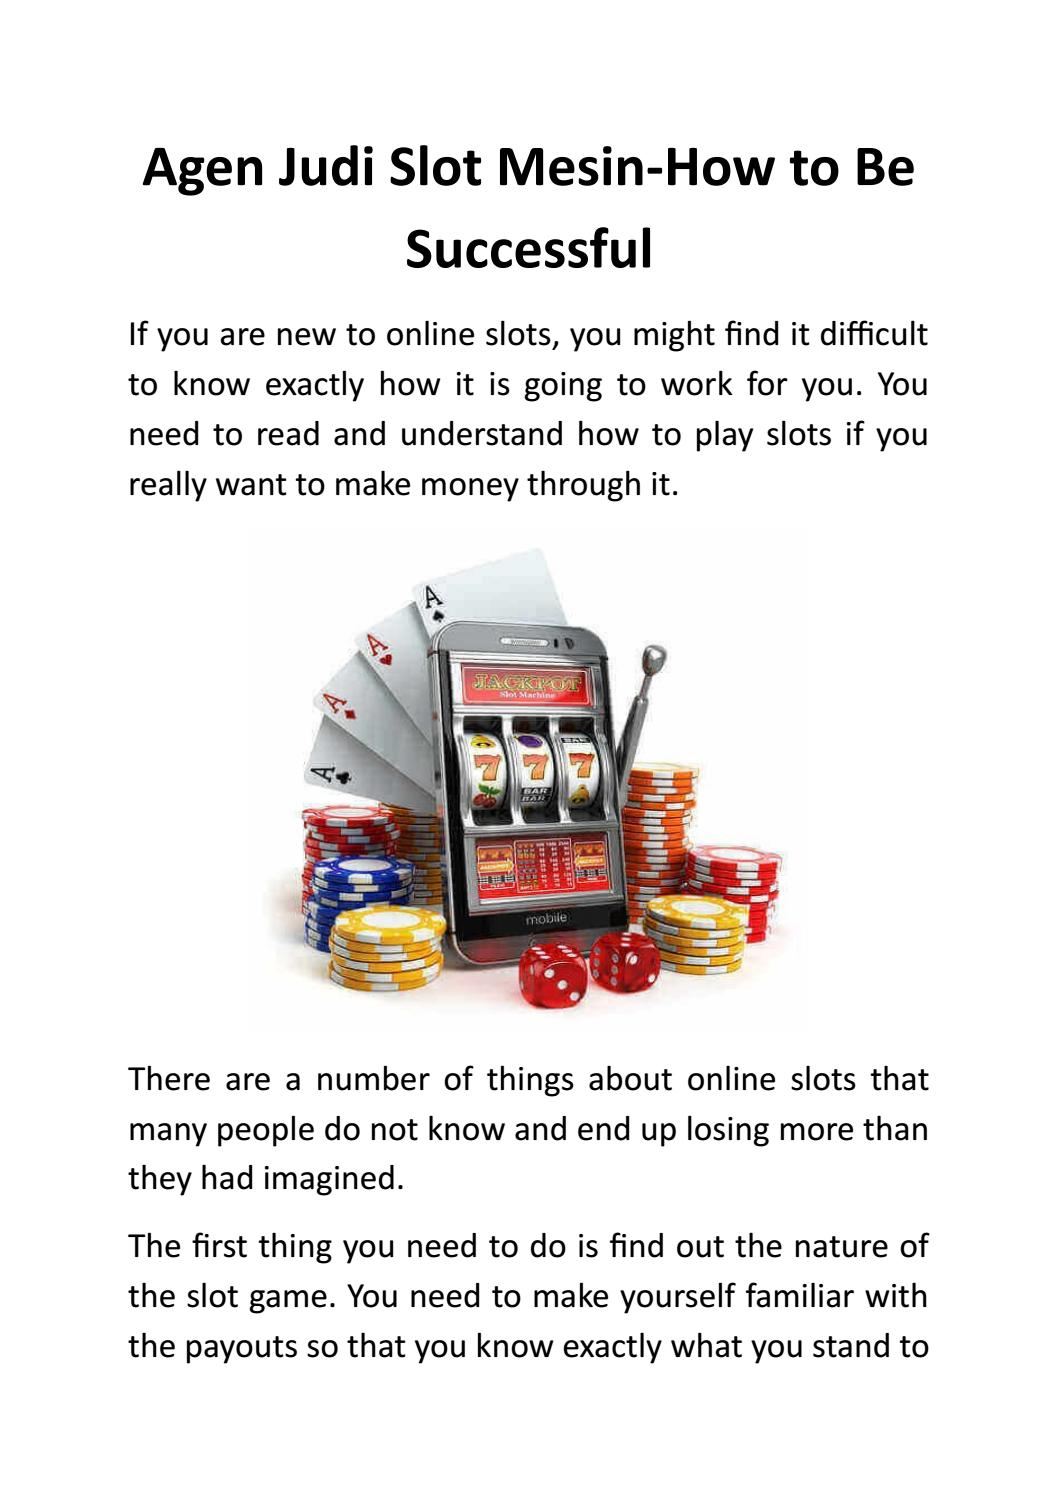 Agen Judi Slot Mesin How To Be Successful By Johnathan Price Issuu